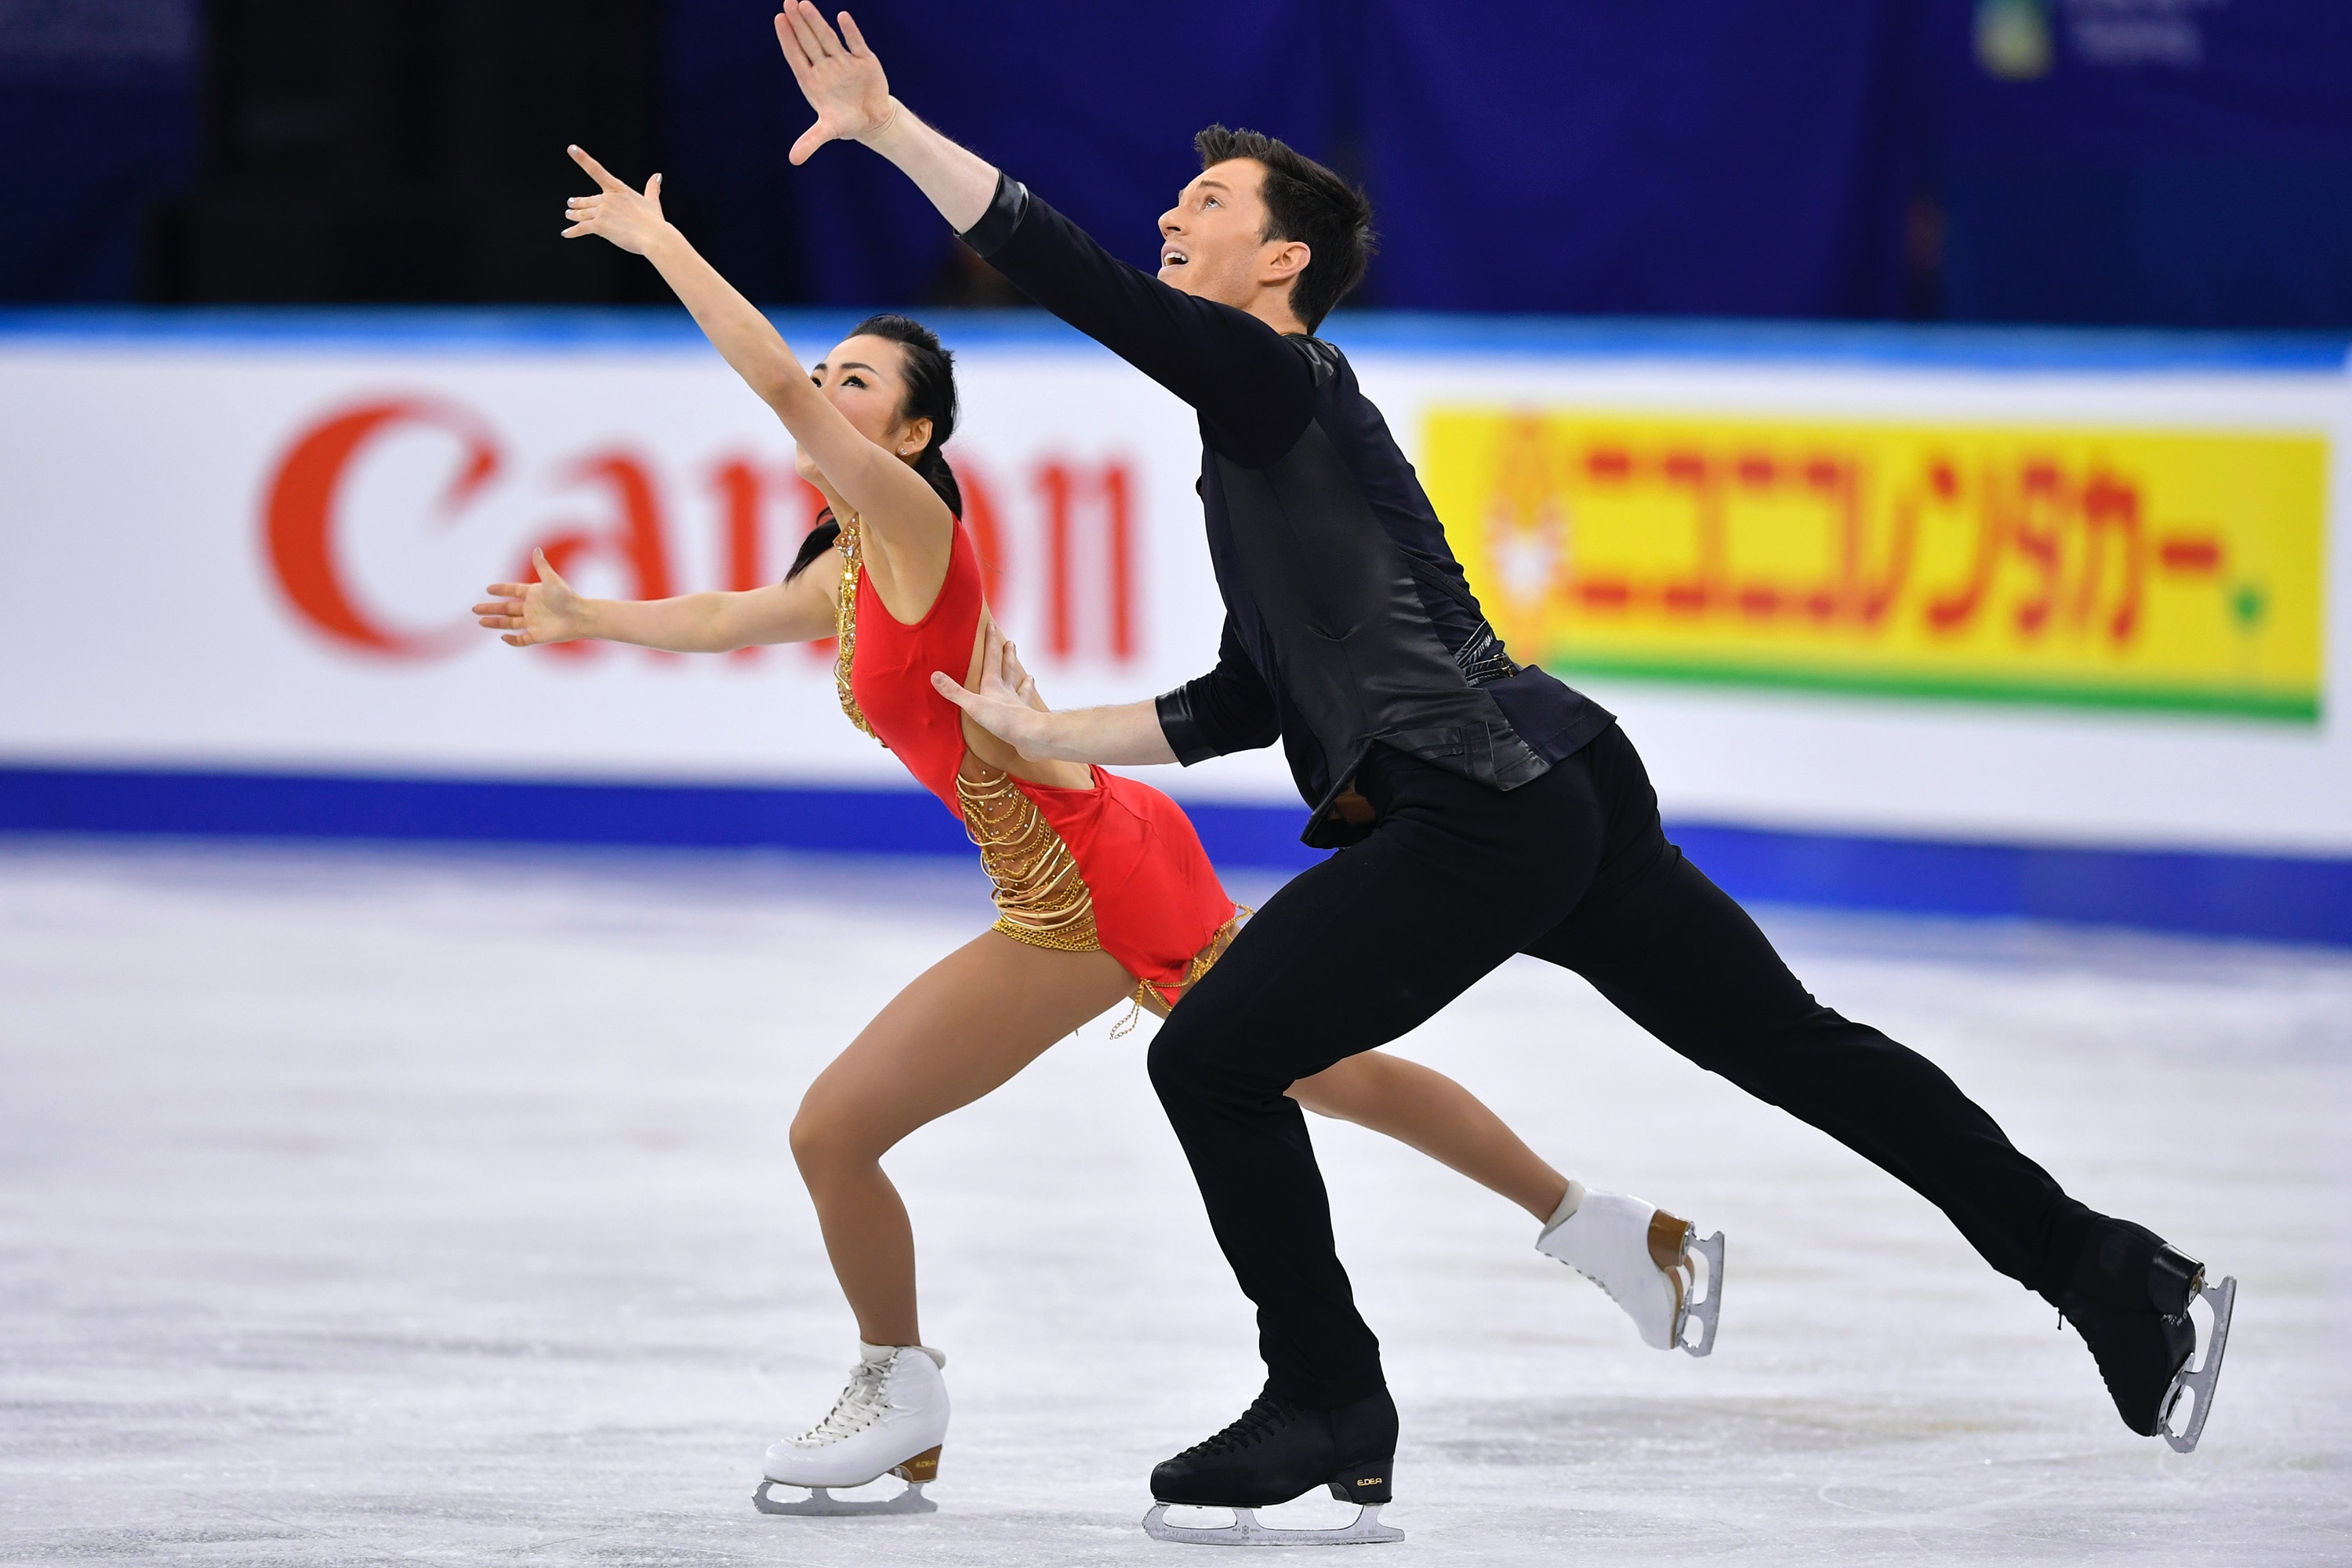 This is a couple figure skating.